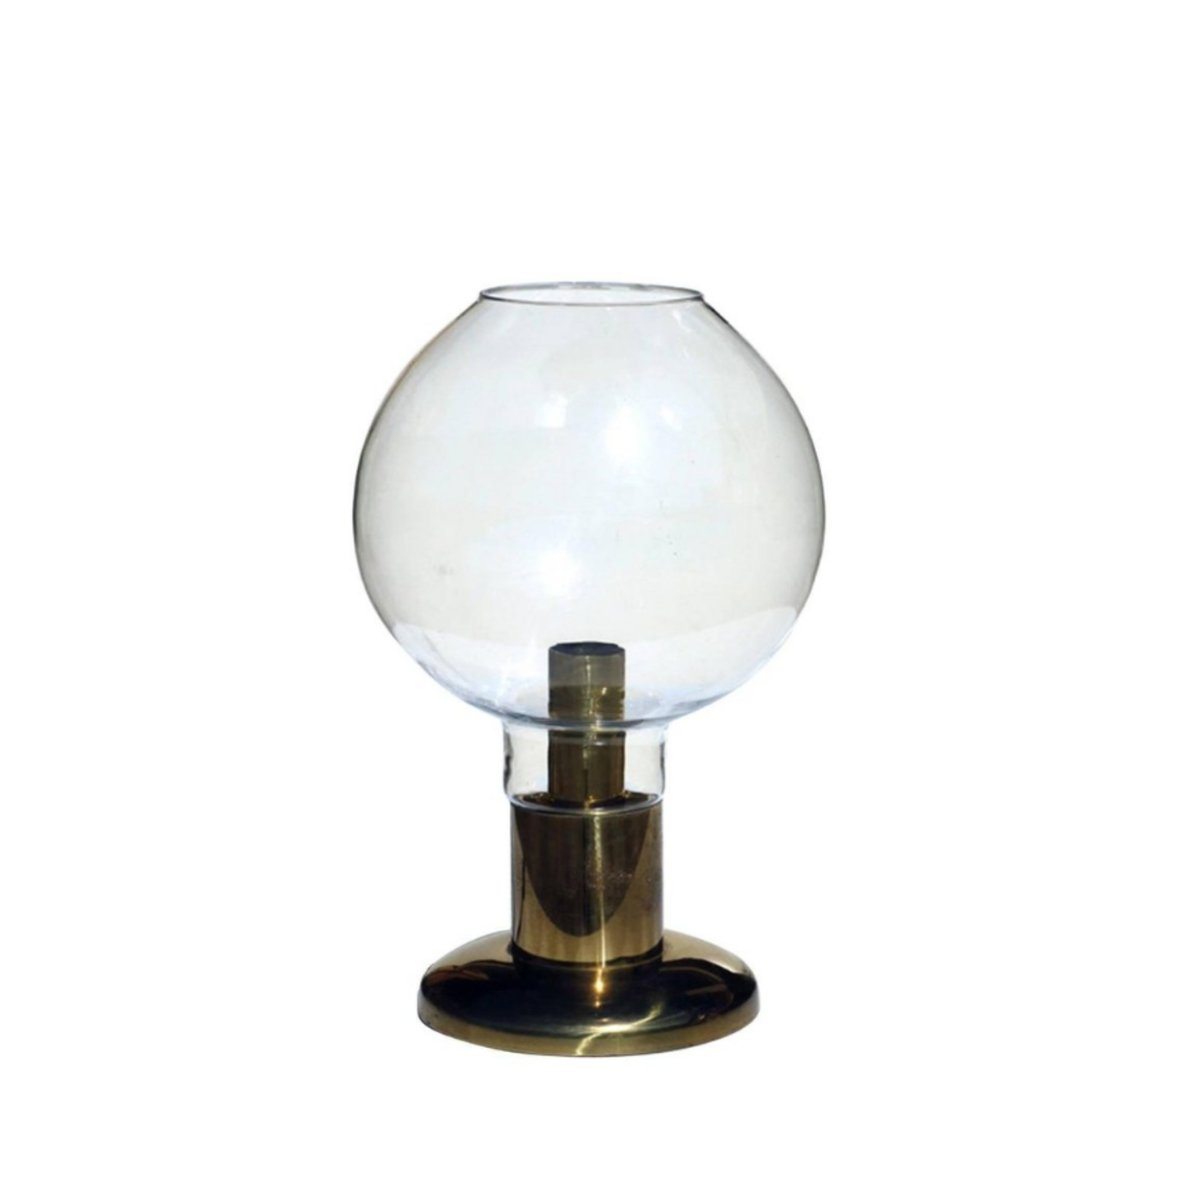 Mundgeblasene Glas Hollywood Regency Messing Tischlampe, 1970er